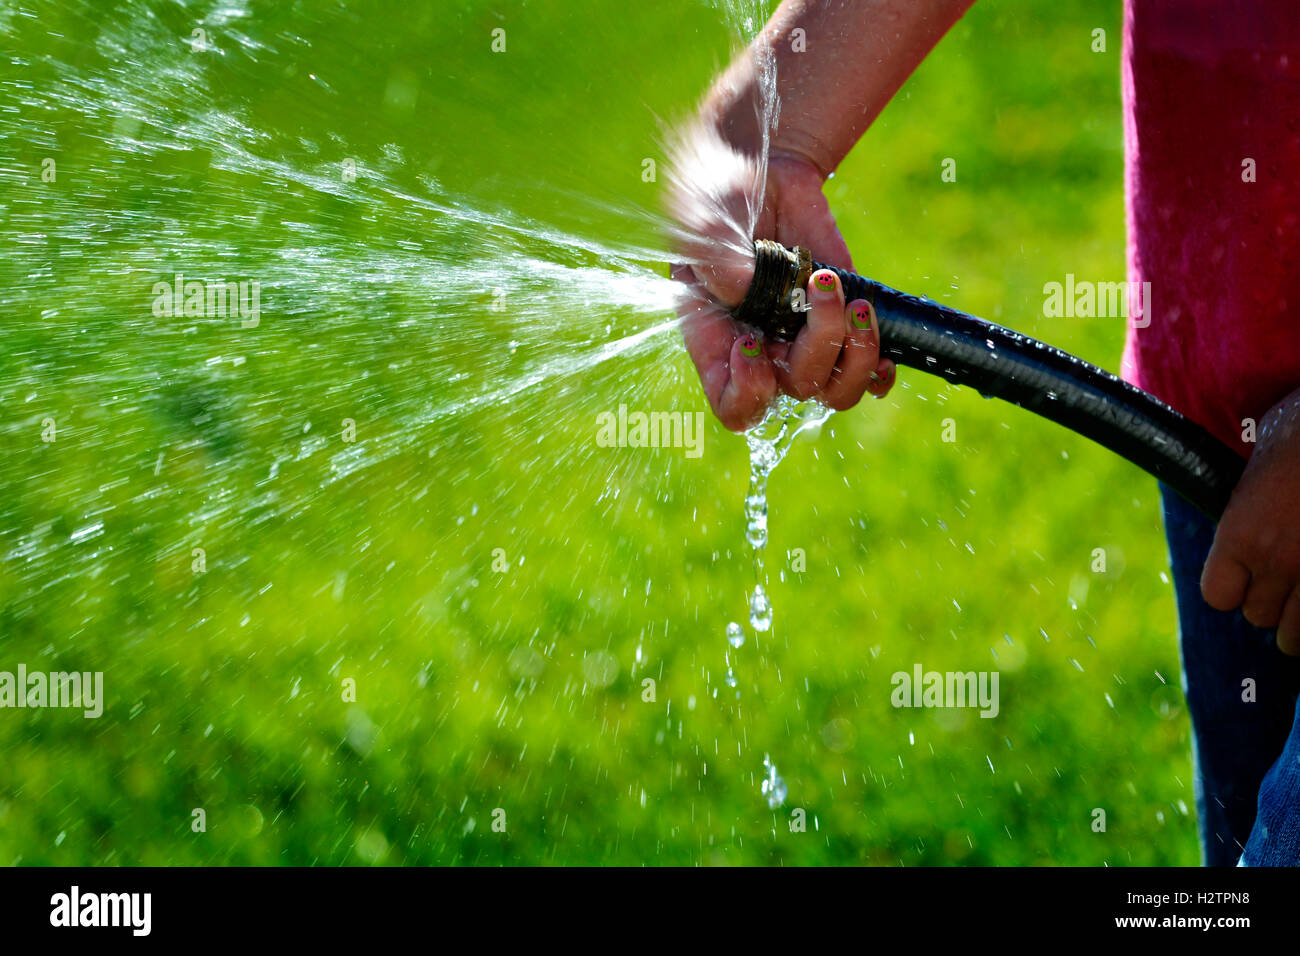 Hand And Hose Squirting Shooting Fresh Water On Green